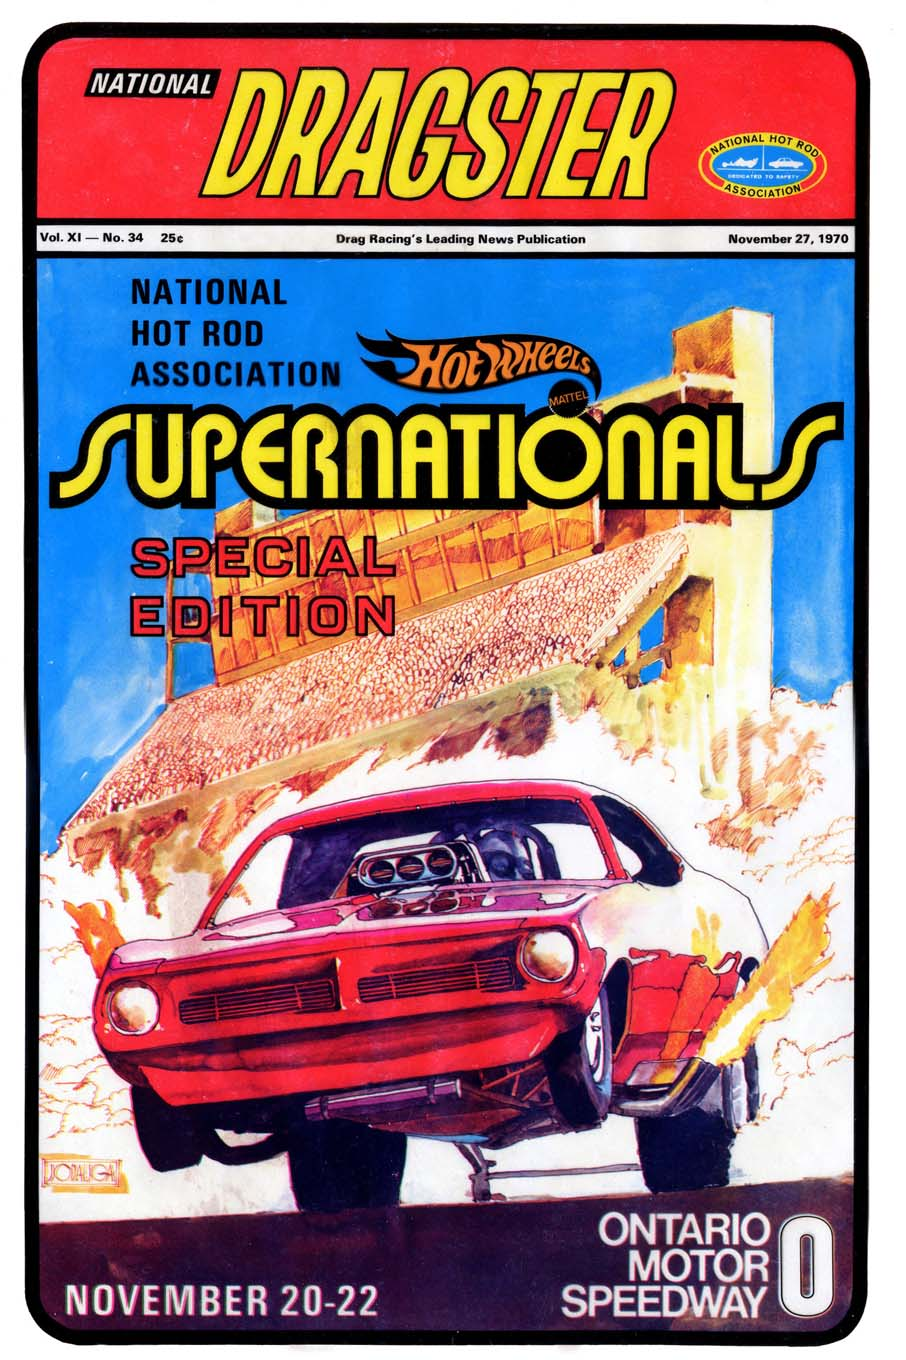 This artwork for the Supernationals Special Edition of National DRAGSTER was the first of many covers that he did for the NHRA official publication.